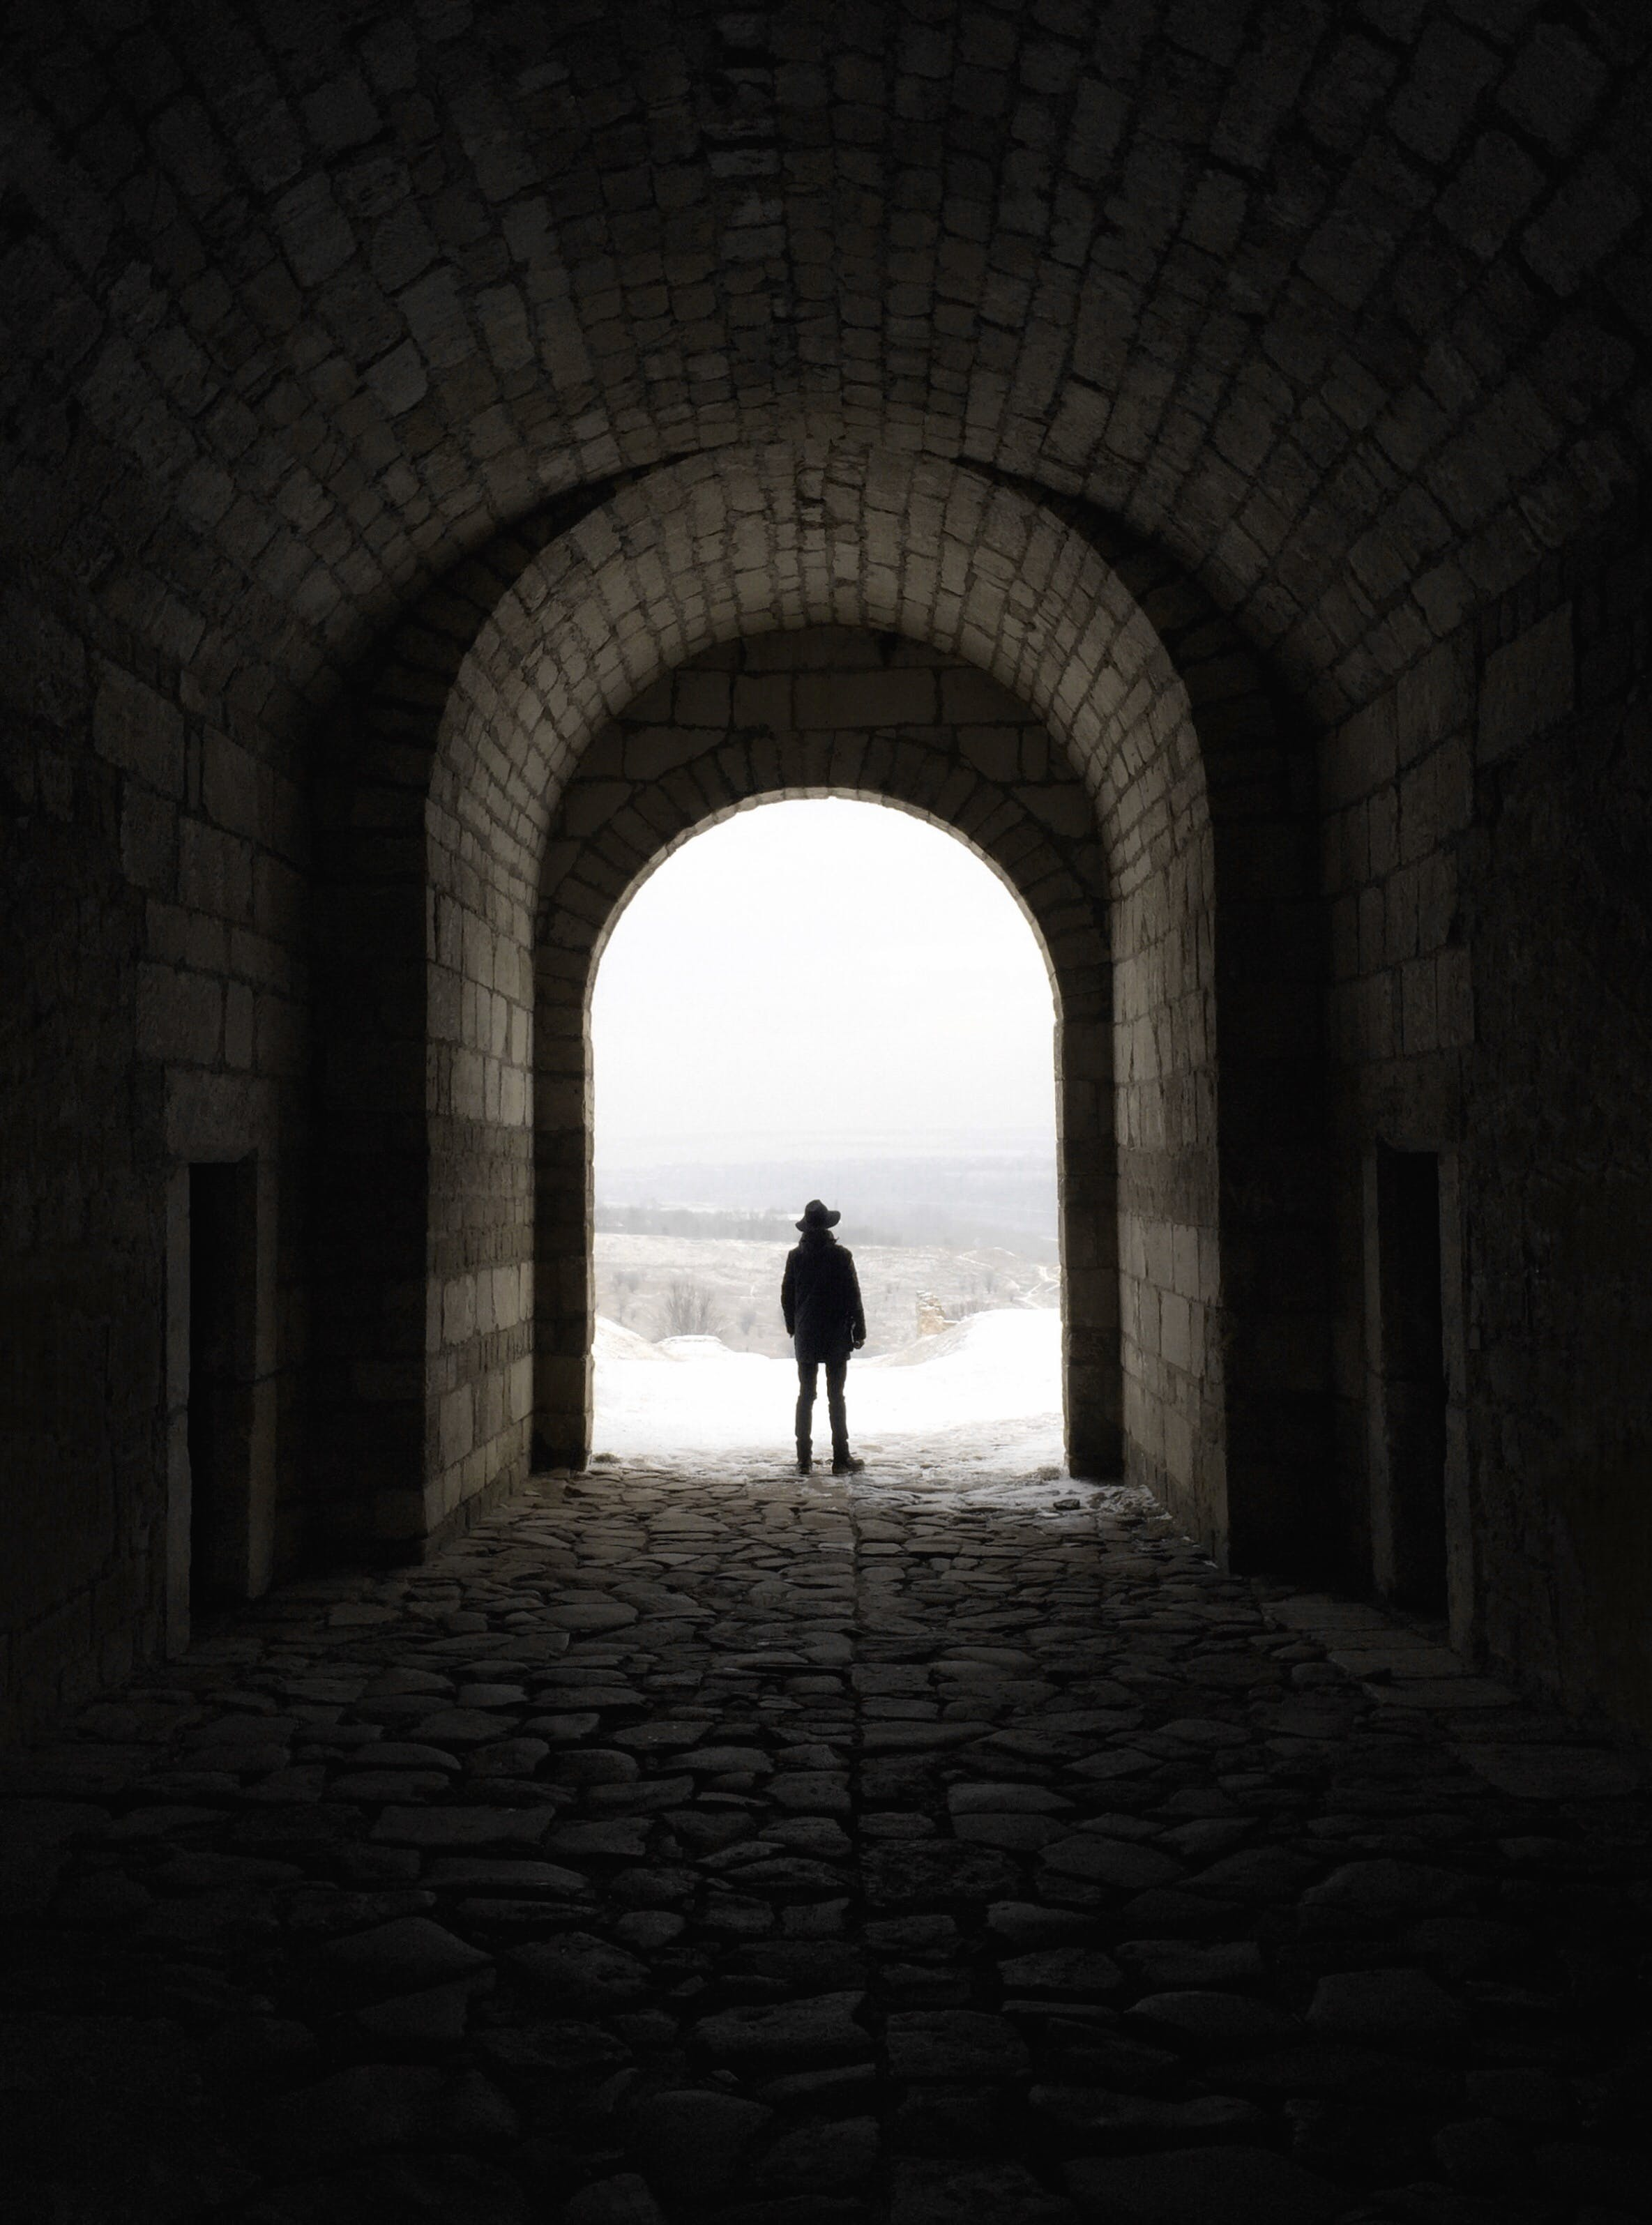 Free stock photo of person, silhouette, tunnel, arch